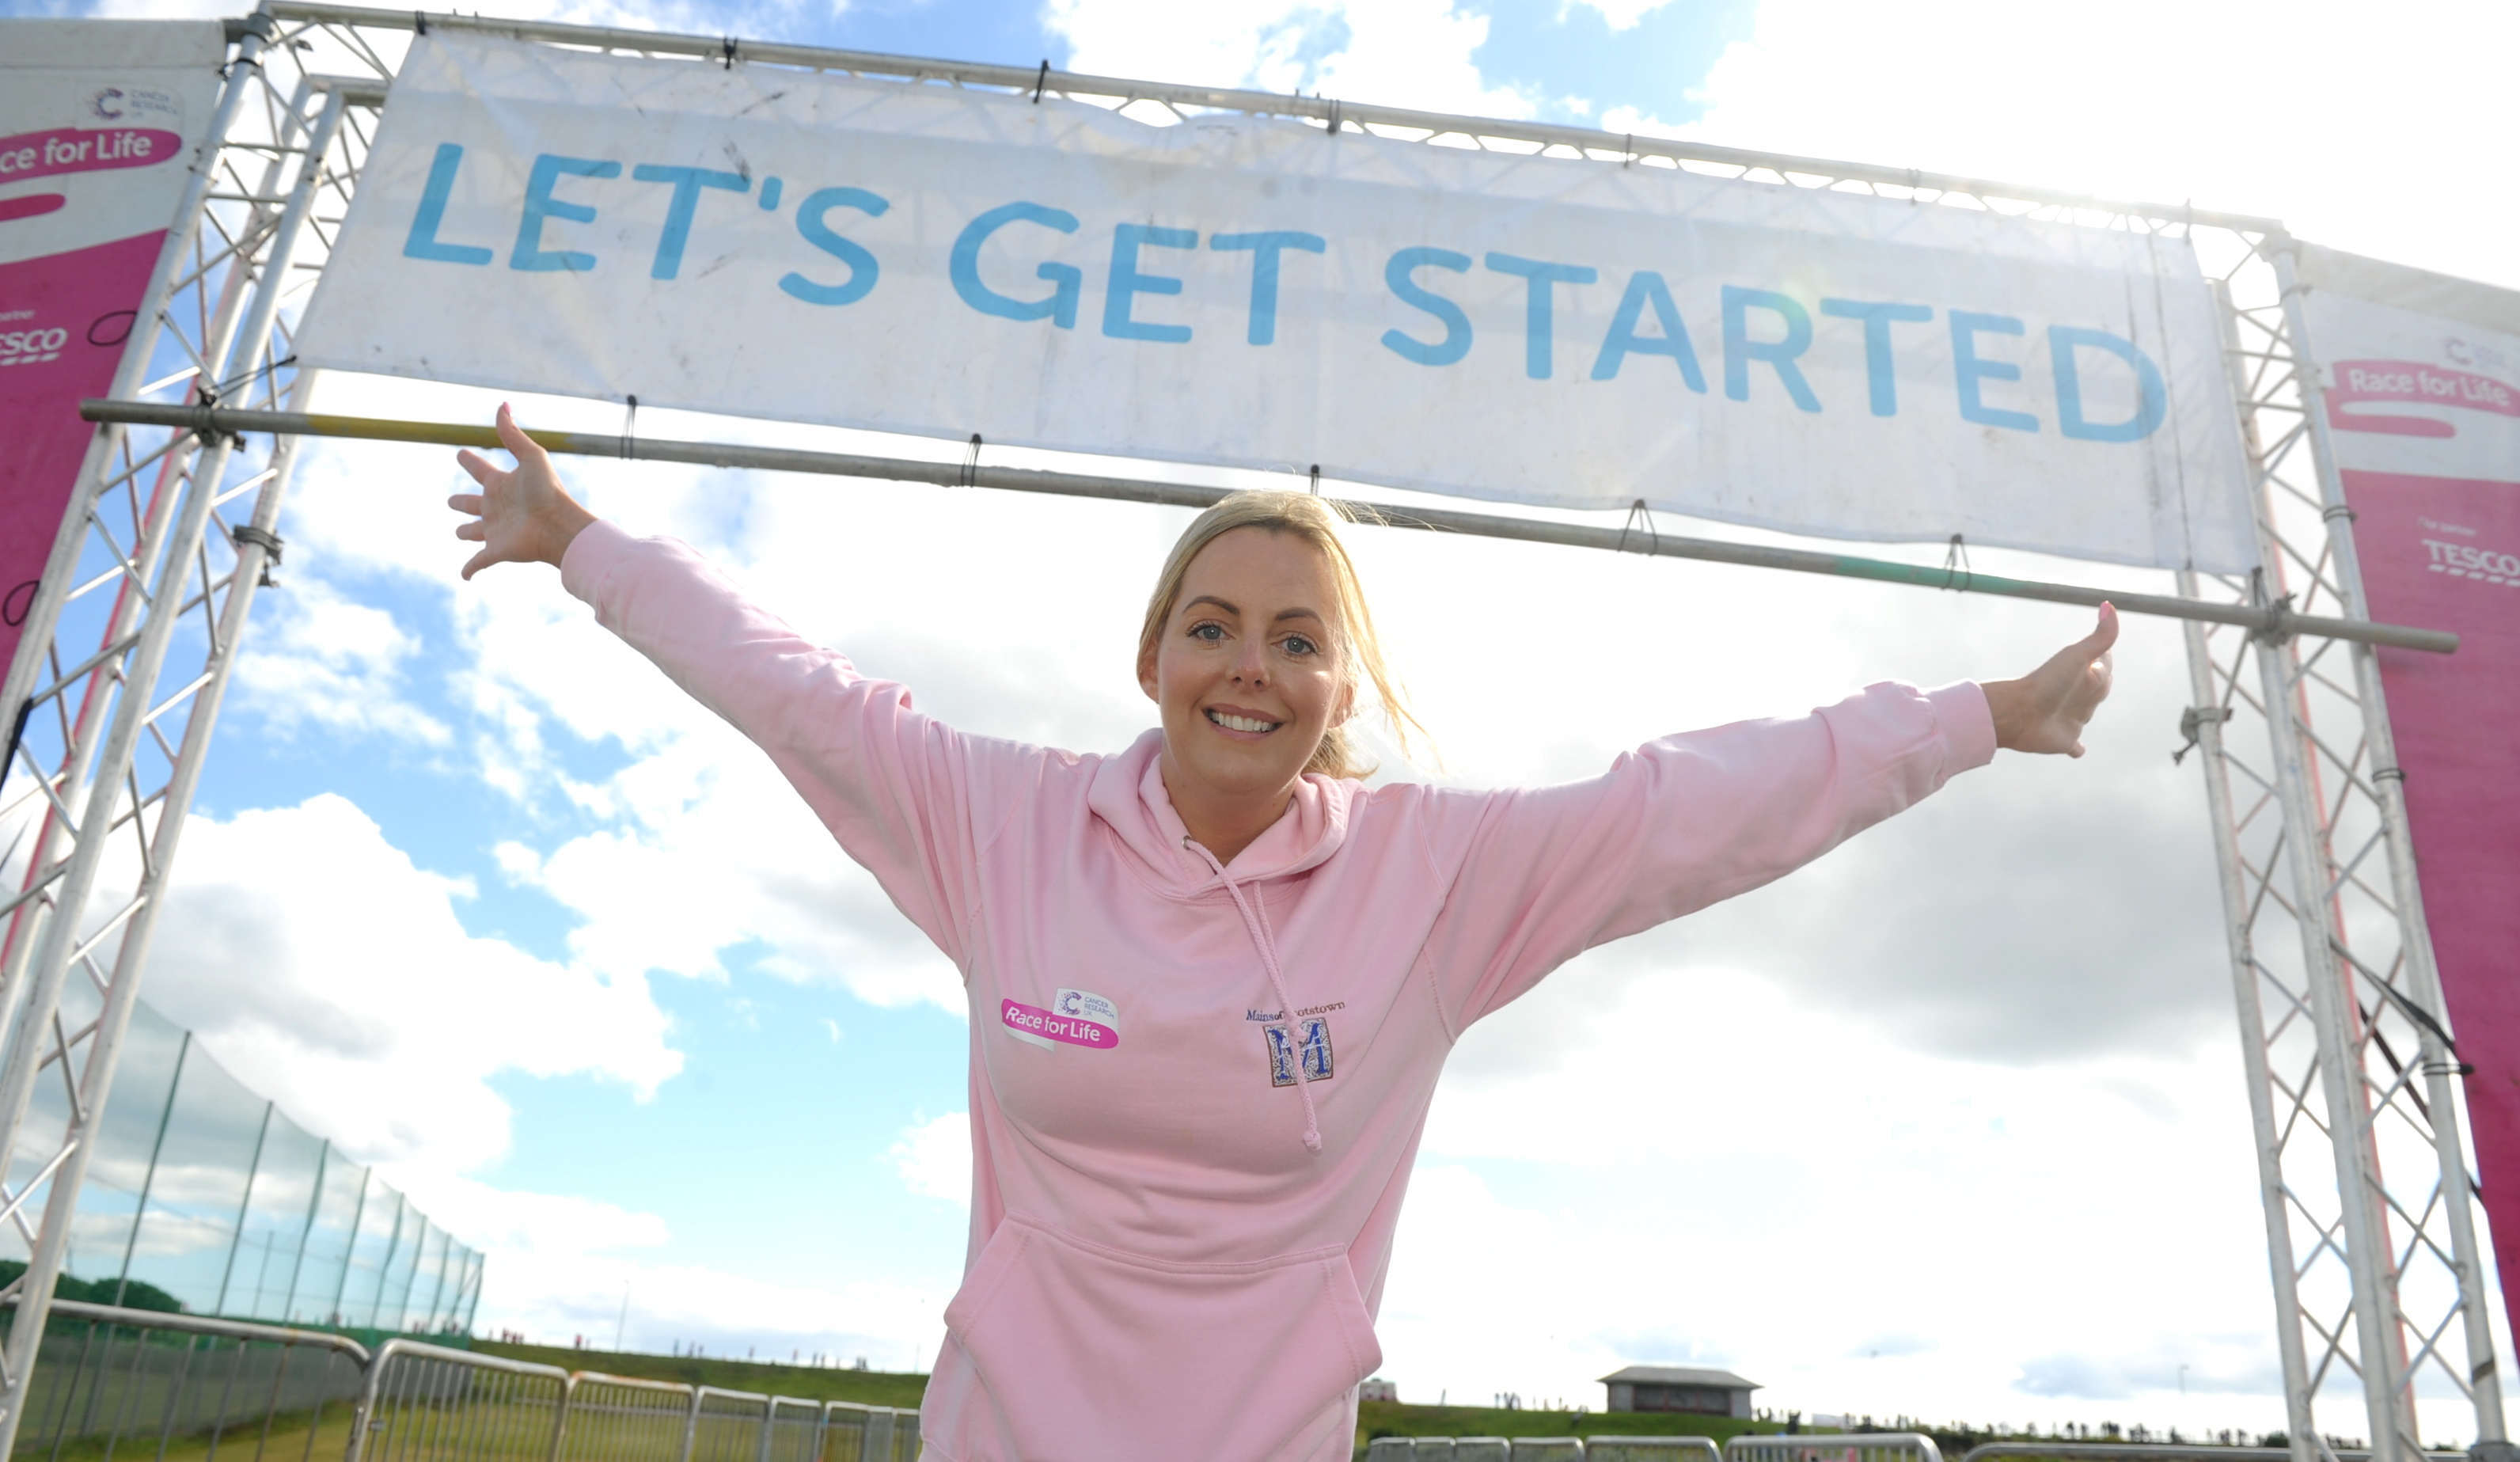 fighting on regardless:  Pamela Soutter, and inset, Susan Milne who started proceedings at the Race for Life.